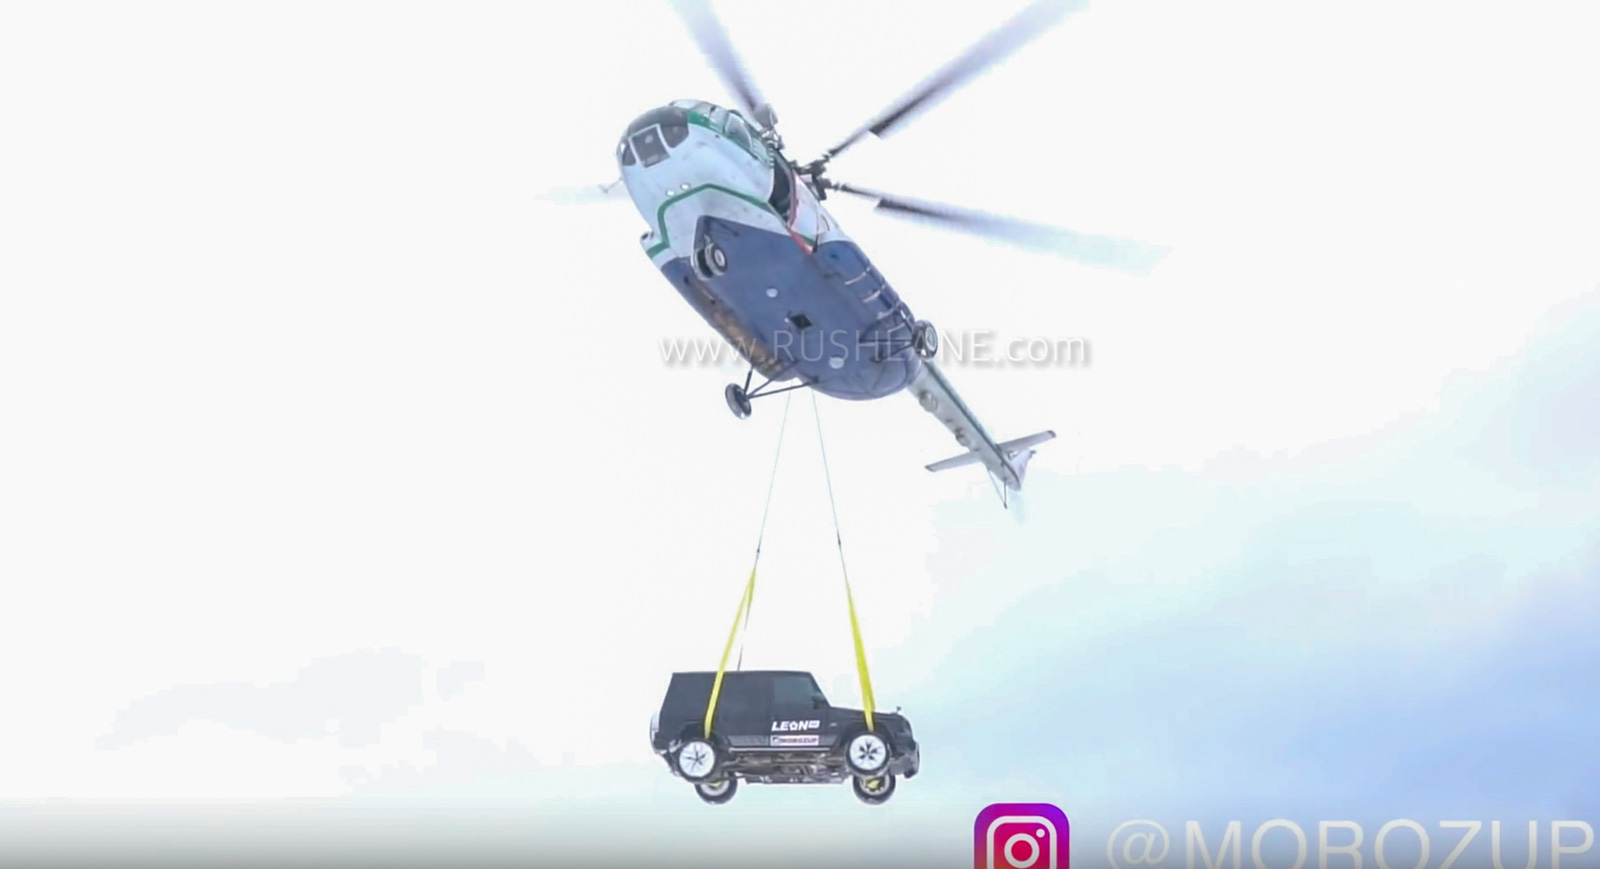 Mercedes G Class drop helicopter